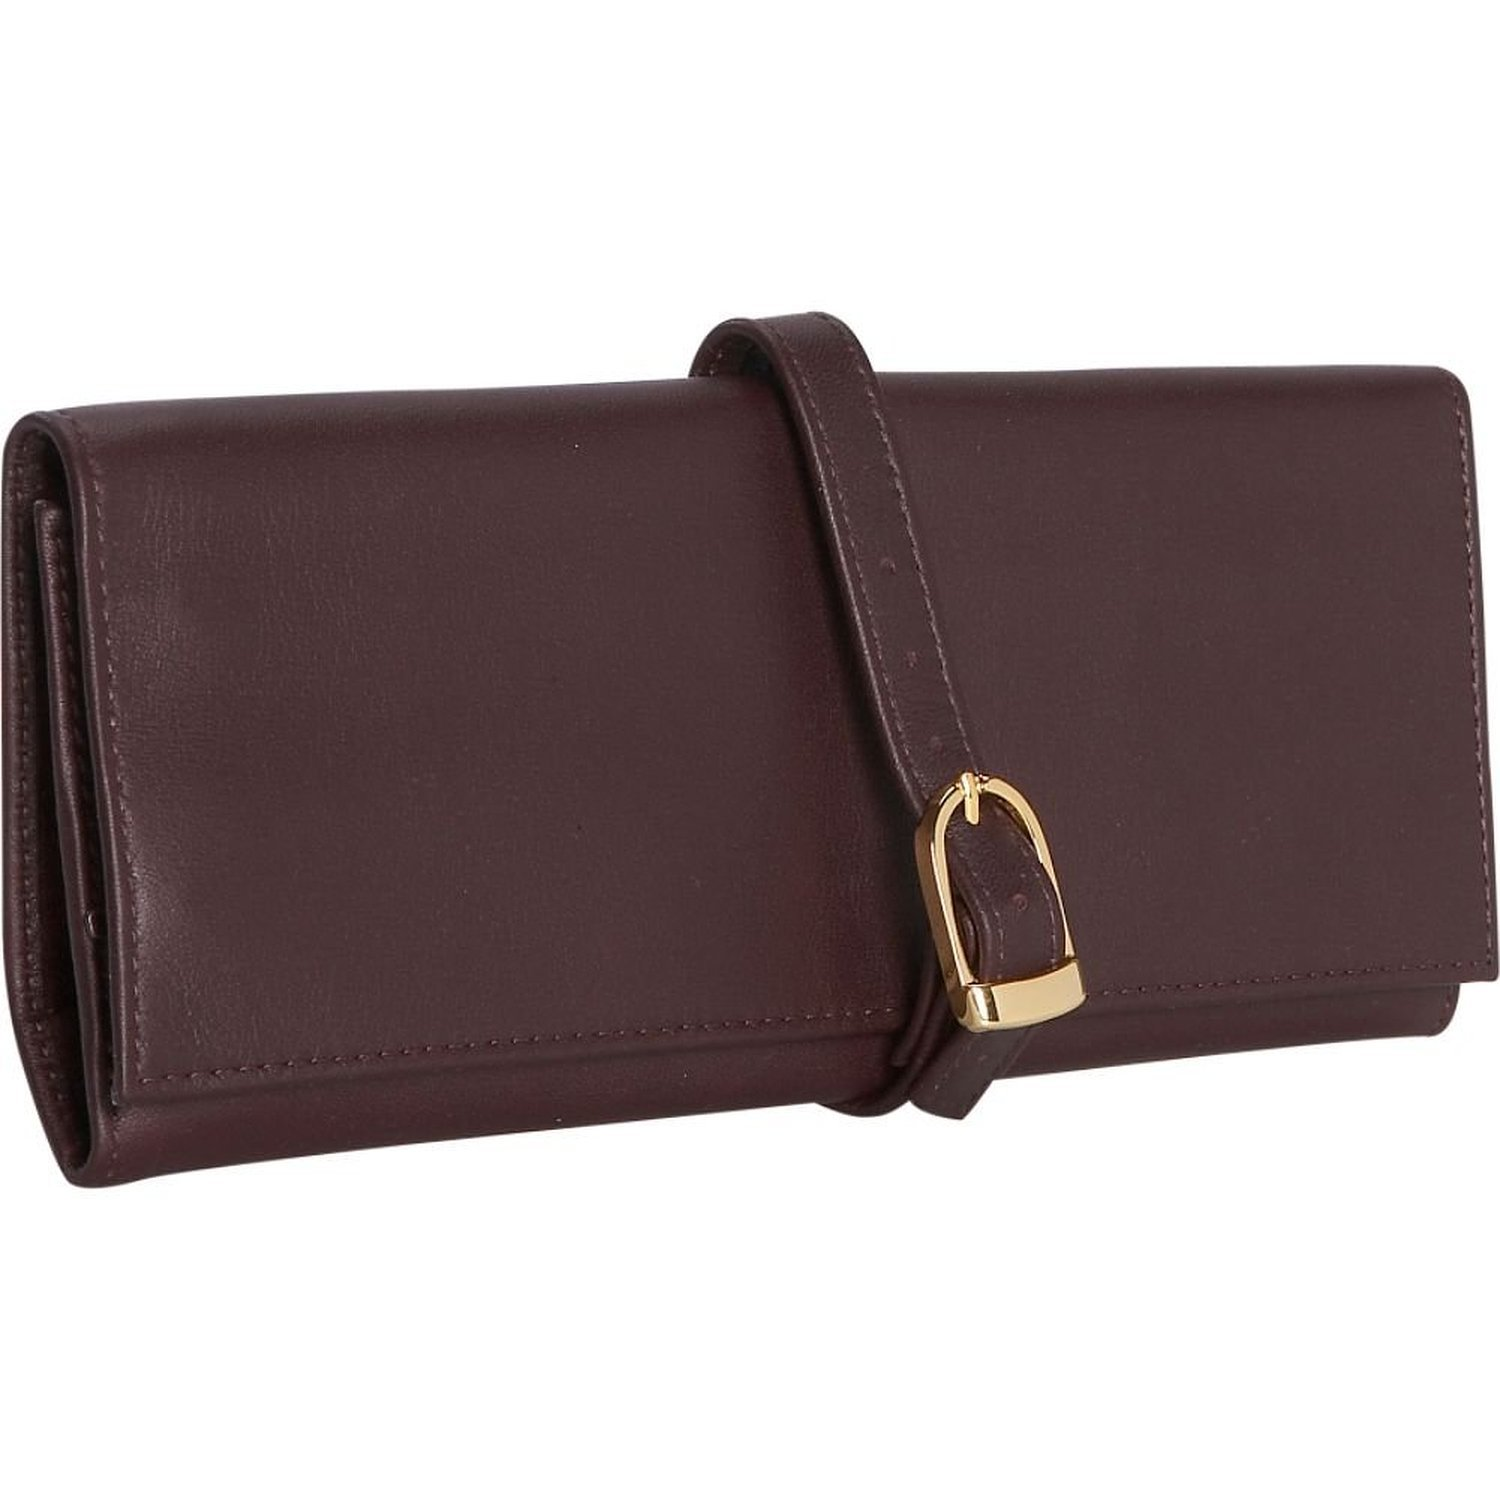 Royce Leather Suede Lined Jewelry Roll (Burgundy)